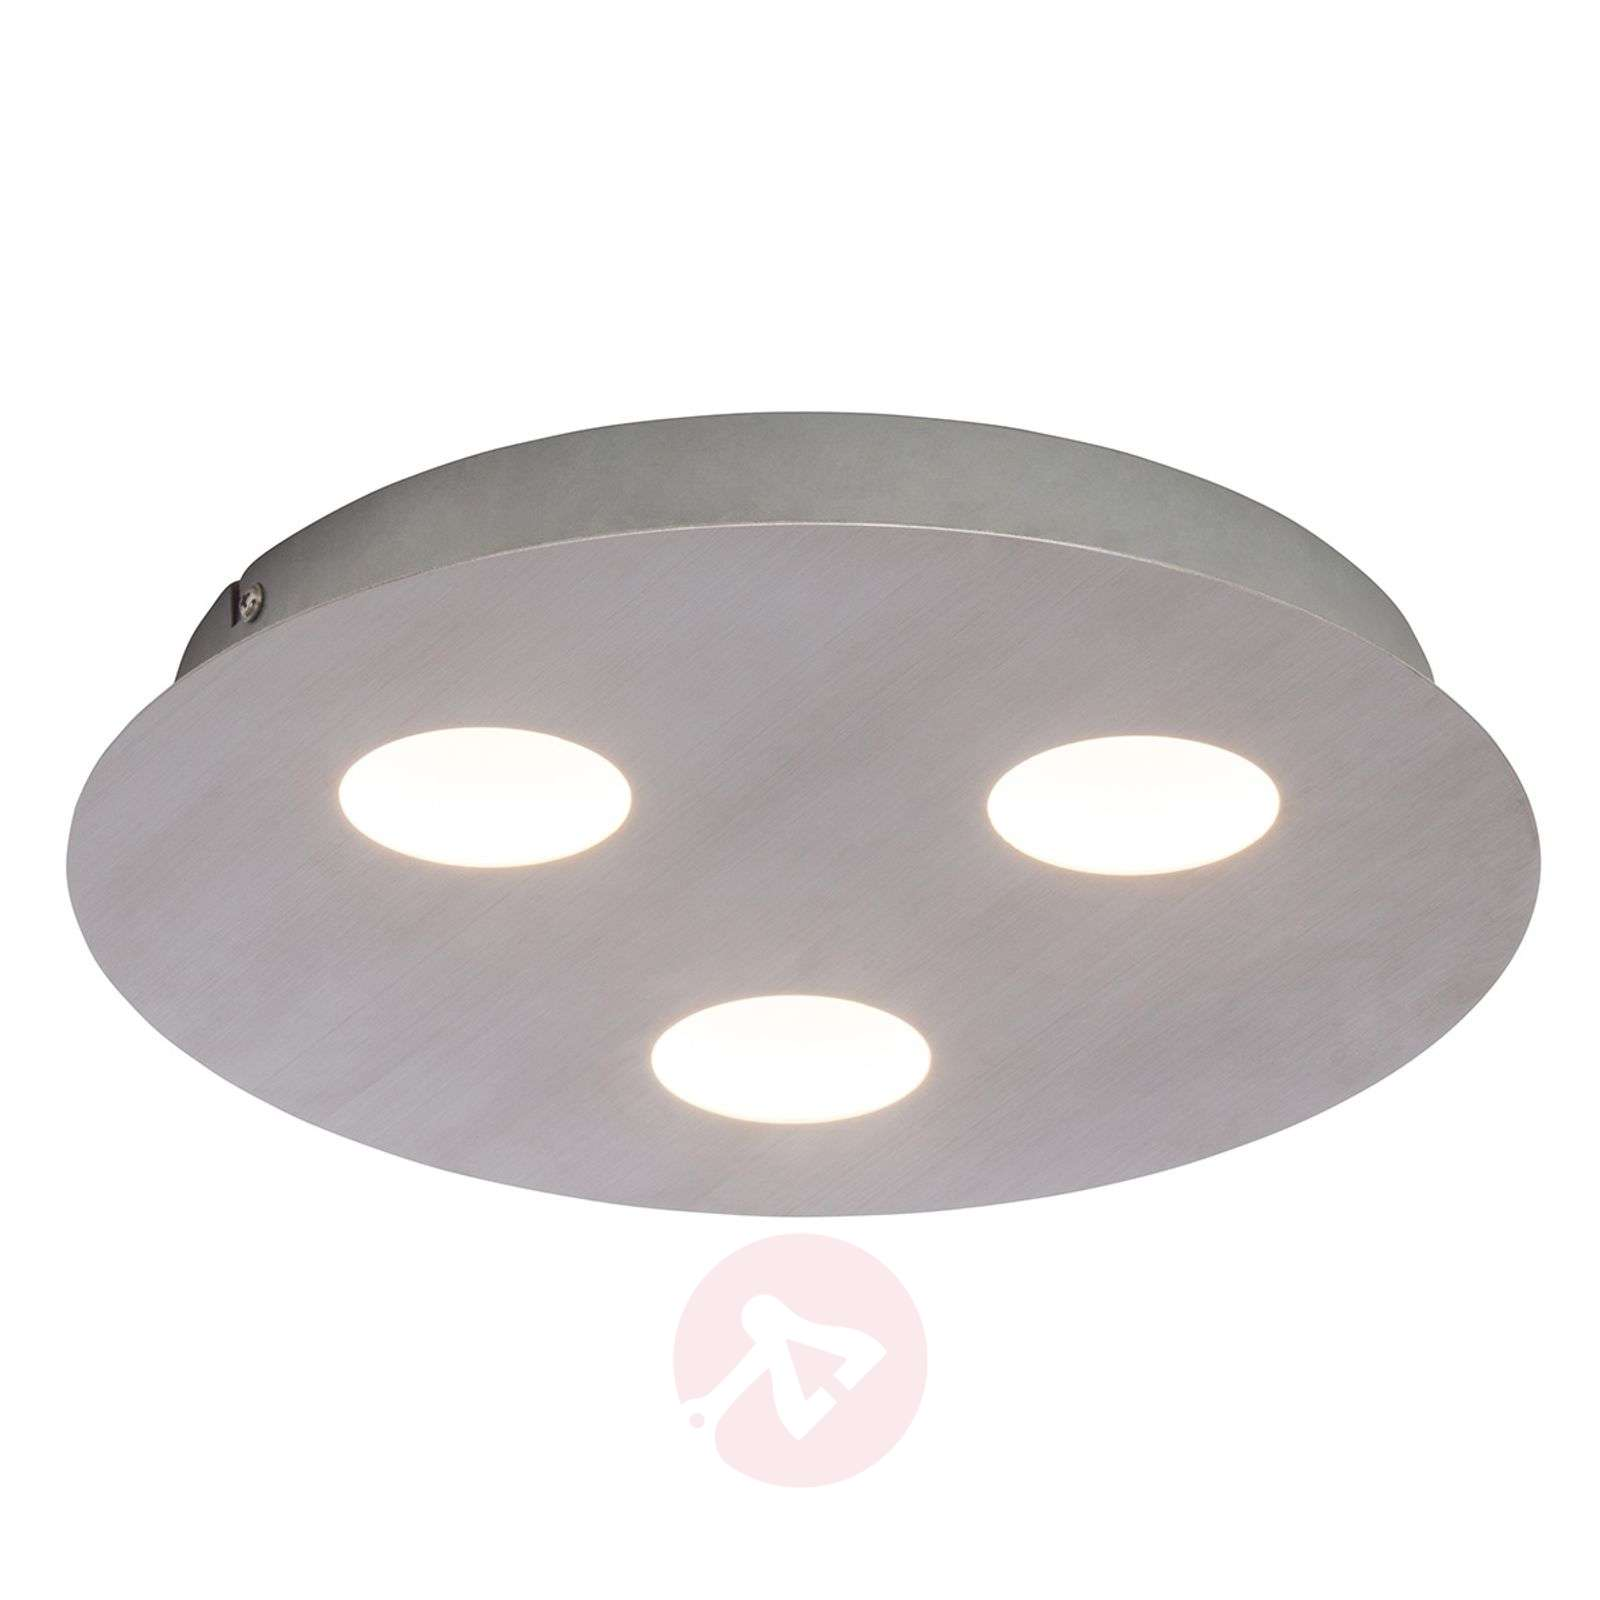 Formit A Round Led Ceiling Light By Aeg